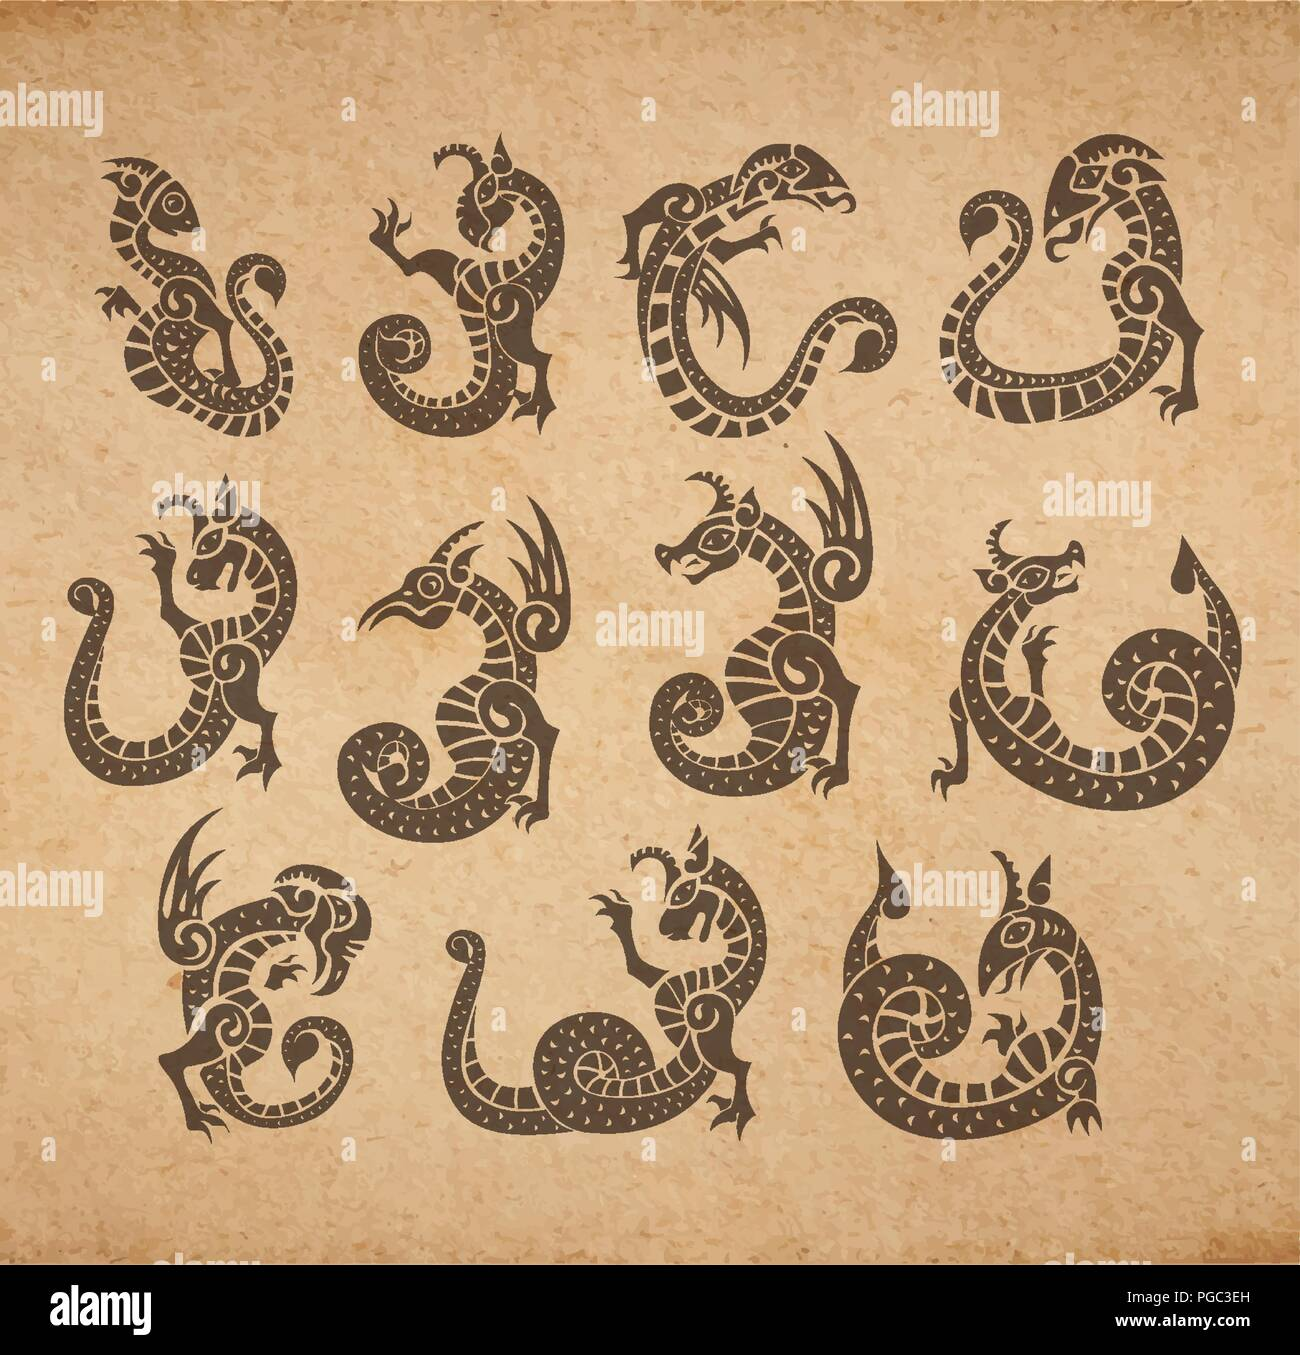 Chimeras ancient medieval set gargoyles vector collection on old parchment vintage illustration - Stock Image